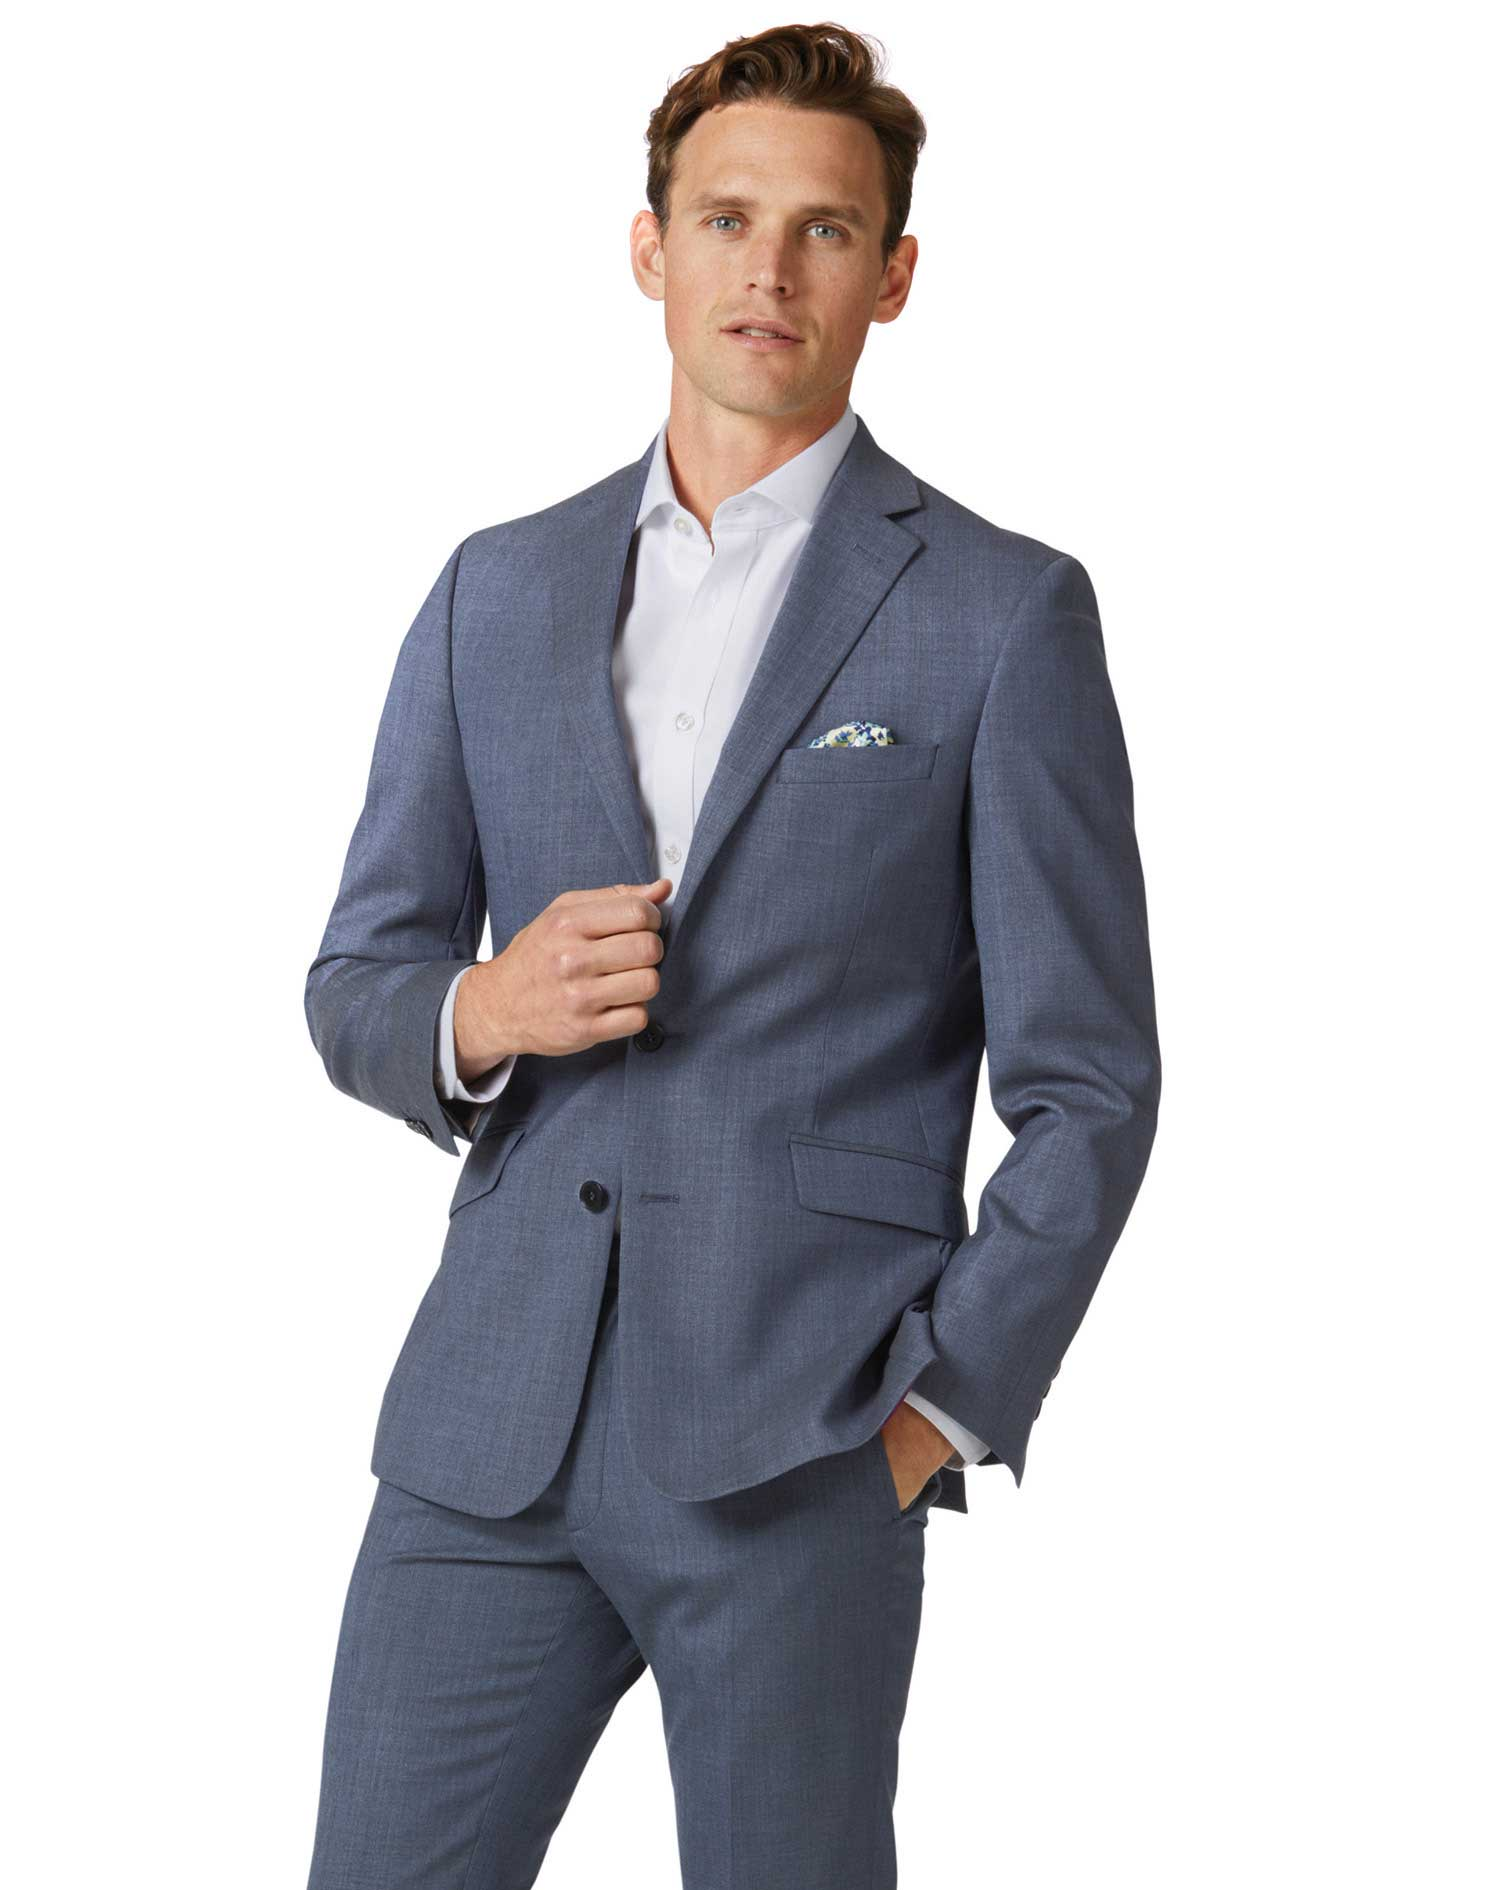 Airforce Blue Extra Slim Fit Merino Business Suit Wool Jacket Size 40 Short by Charles Tyrwhitt